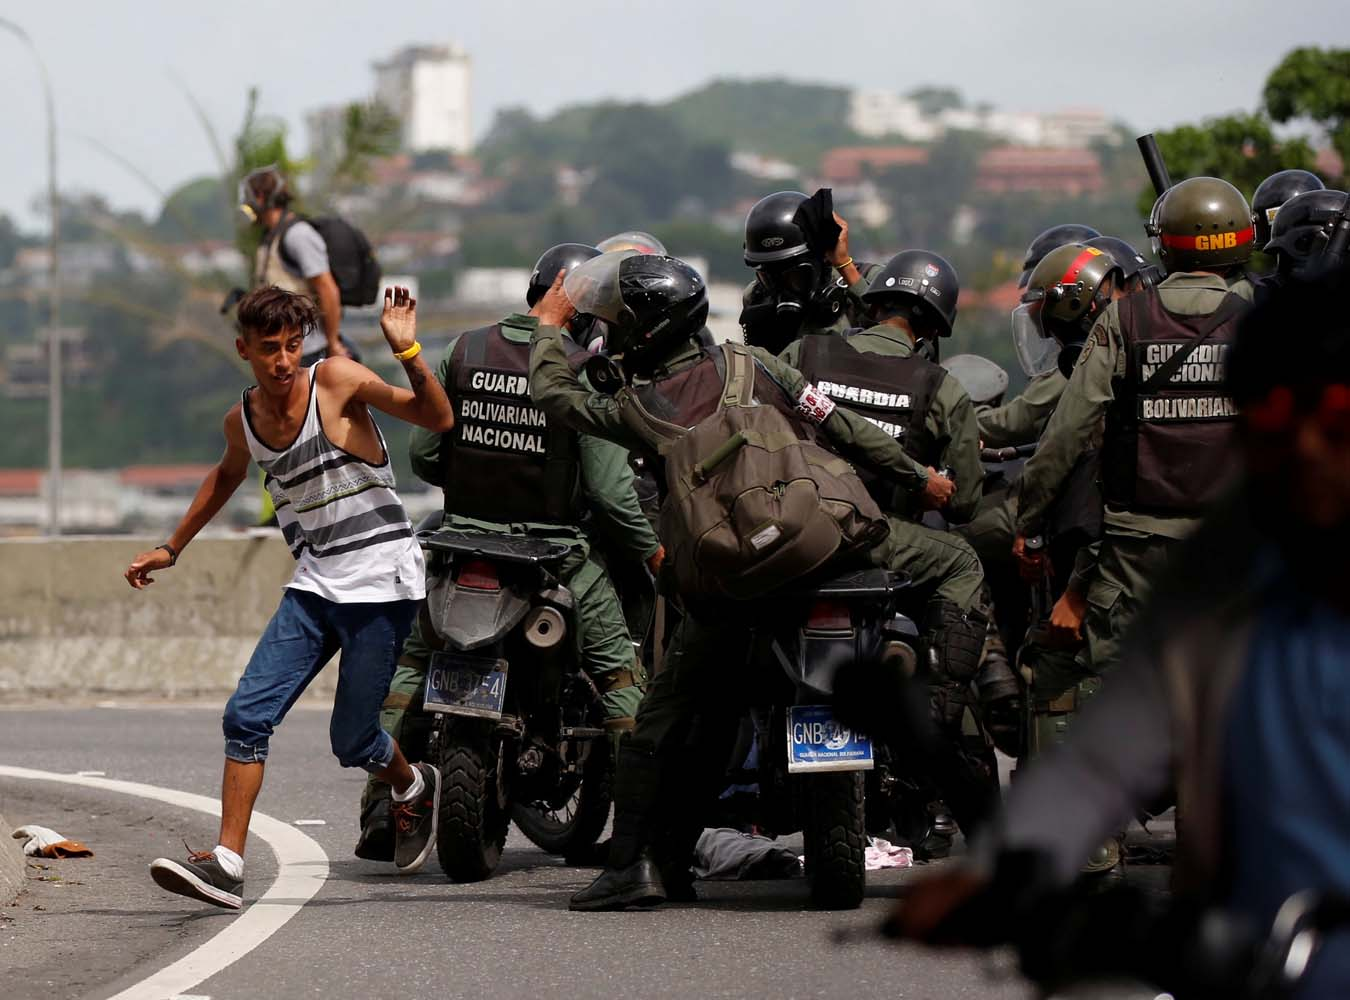 Riot security forces try to grab a man while clashing with demonstrators rallying against President Nicolas Maduro in Caracas, Venezuela, May 24, 2017. REUTERS/Carlos Garcia Rawlins TPX IMAGES OF THE DAY